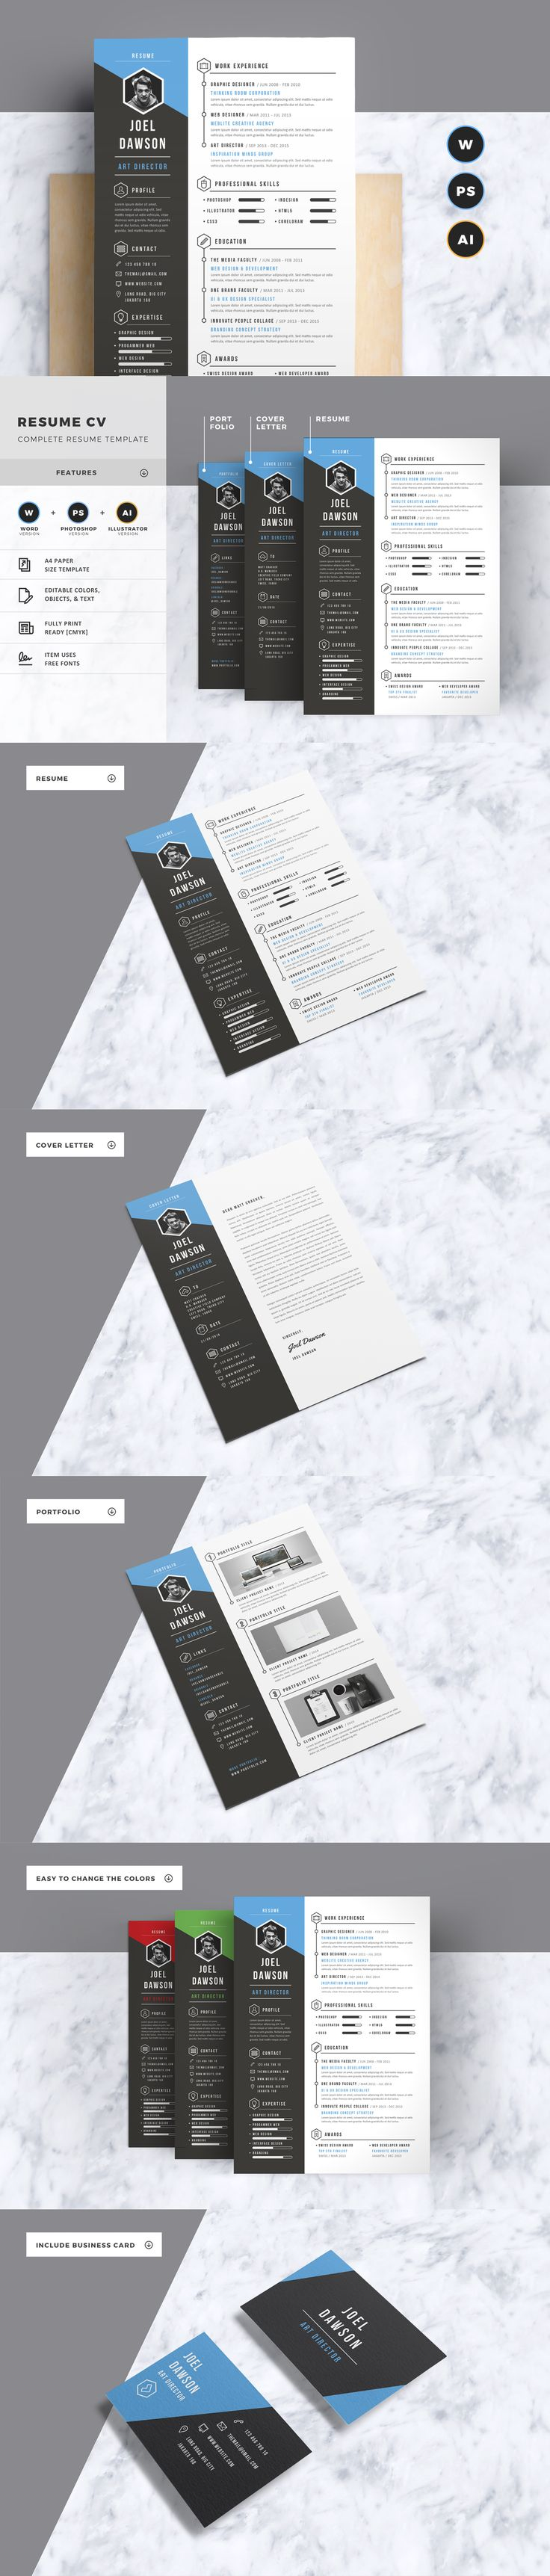 Complete Resume Template With Include Microsoft Word, Photoshop, & illustrator Version.